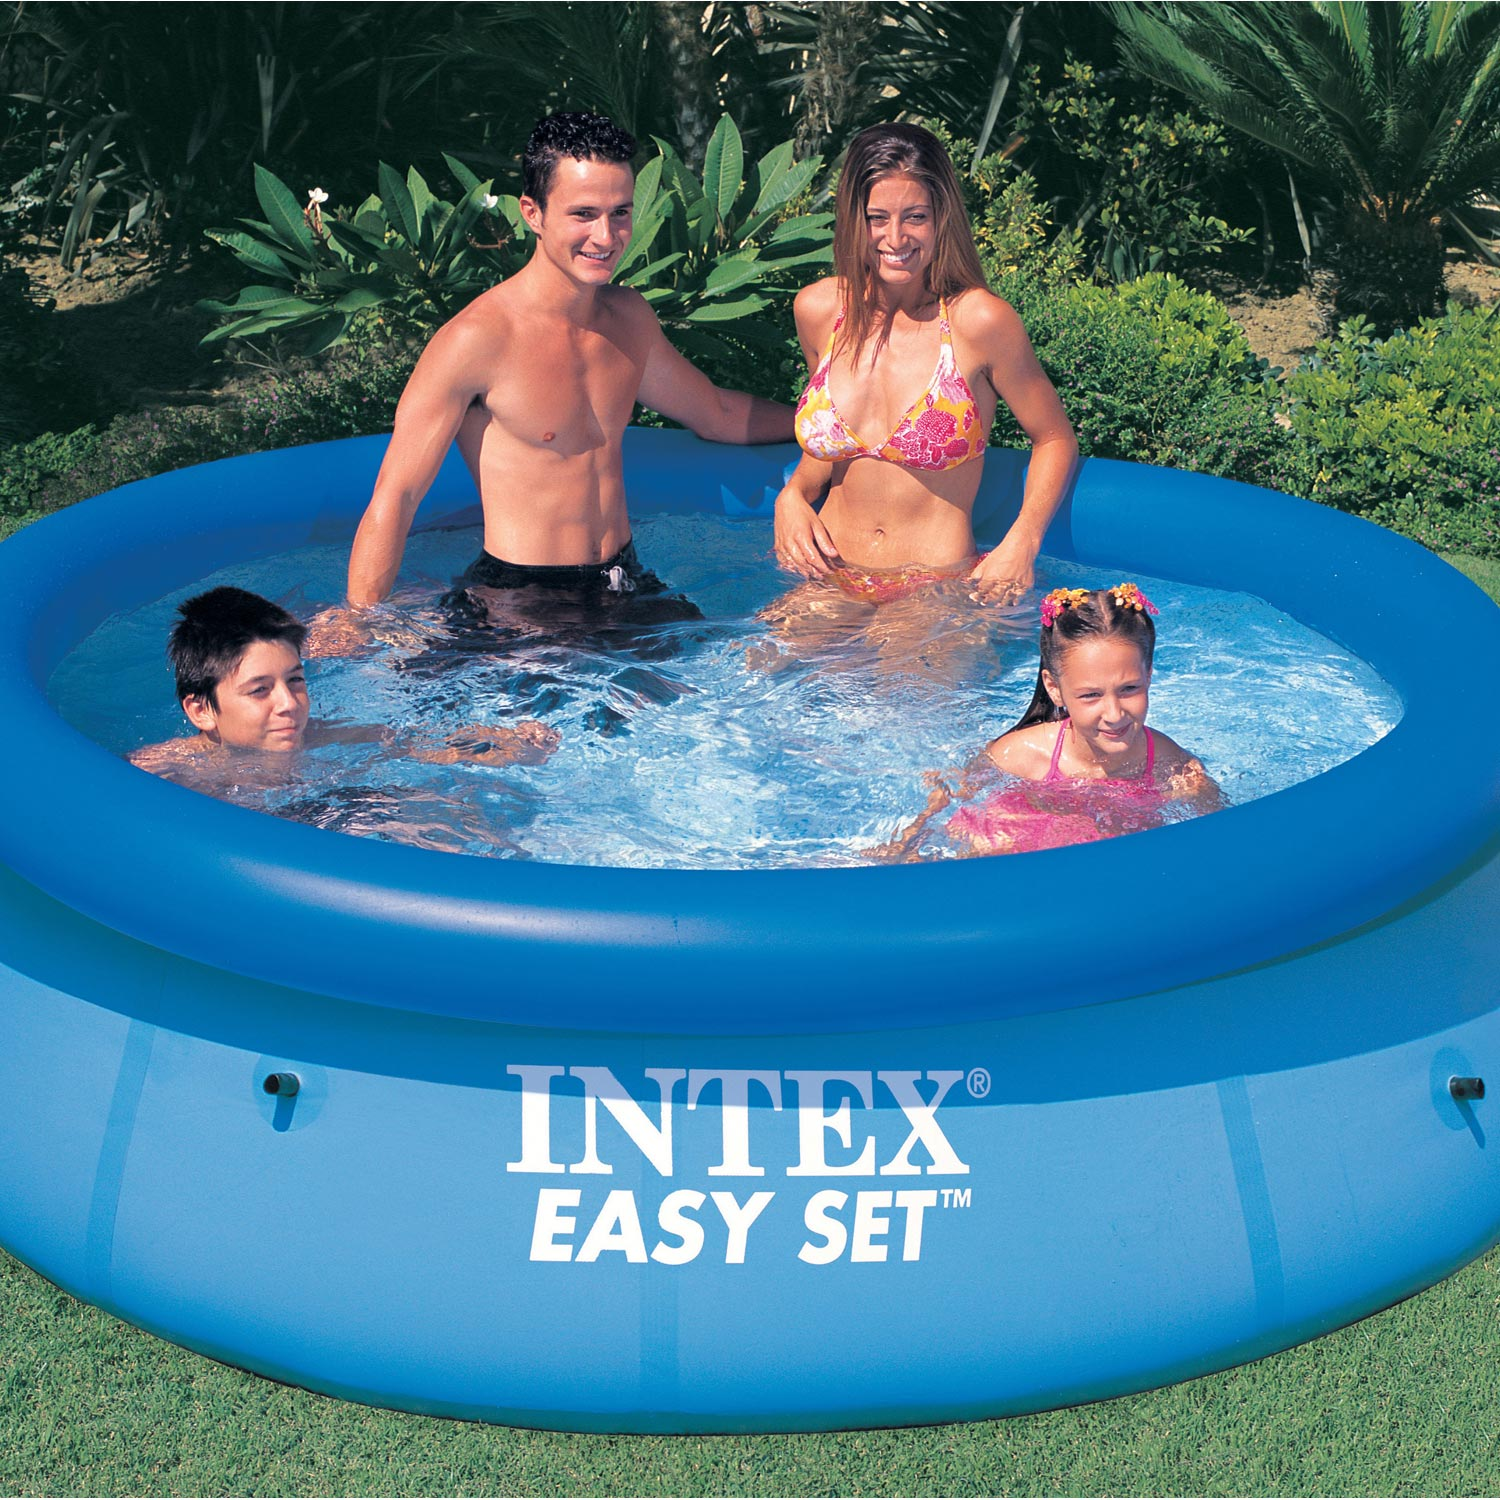 Piscine hors sol gonflable easy set clearview intex ronde diam leroy merlin - Piscine gonflable leroy merlin ...